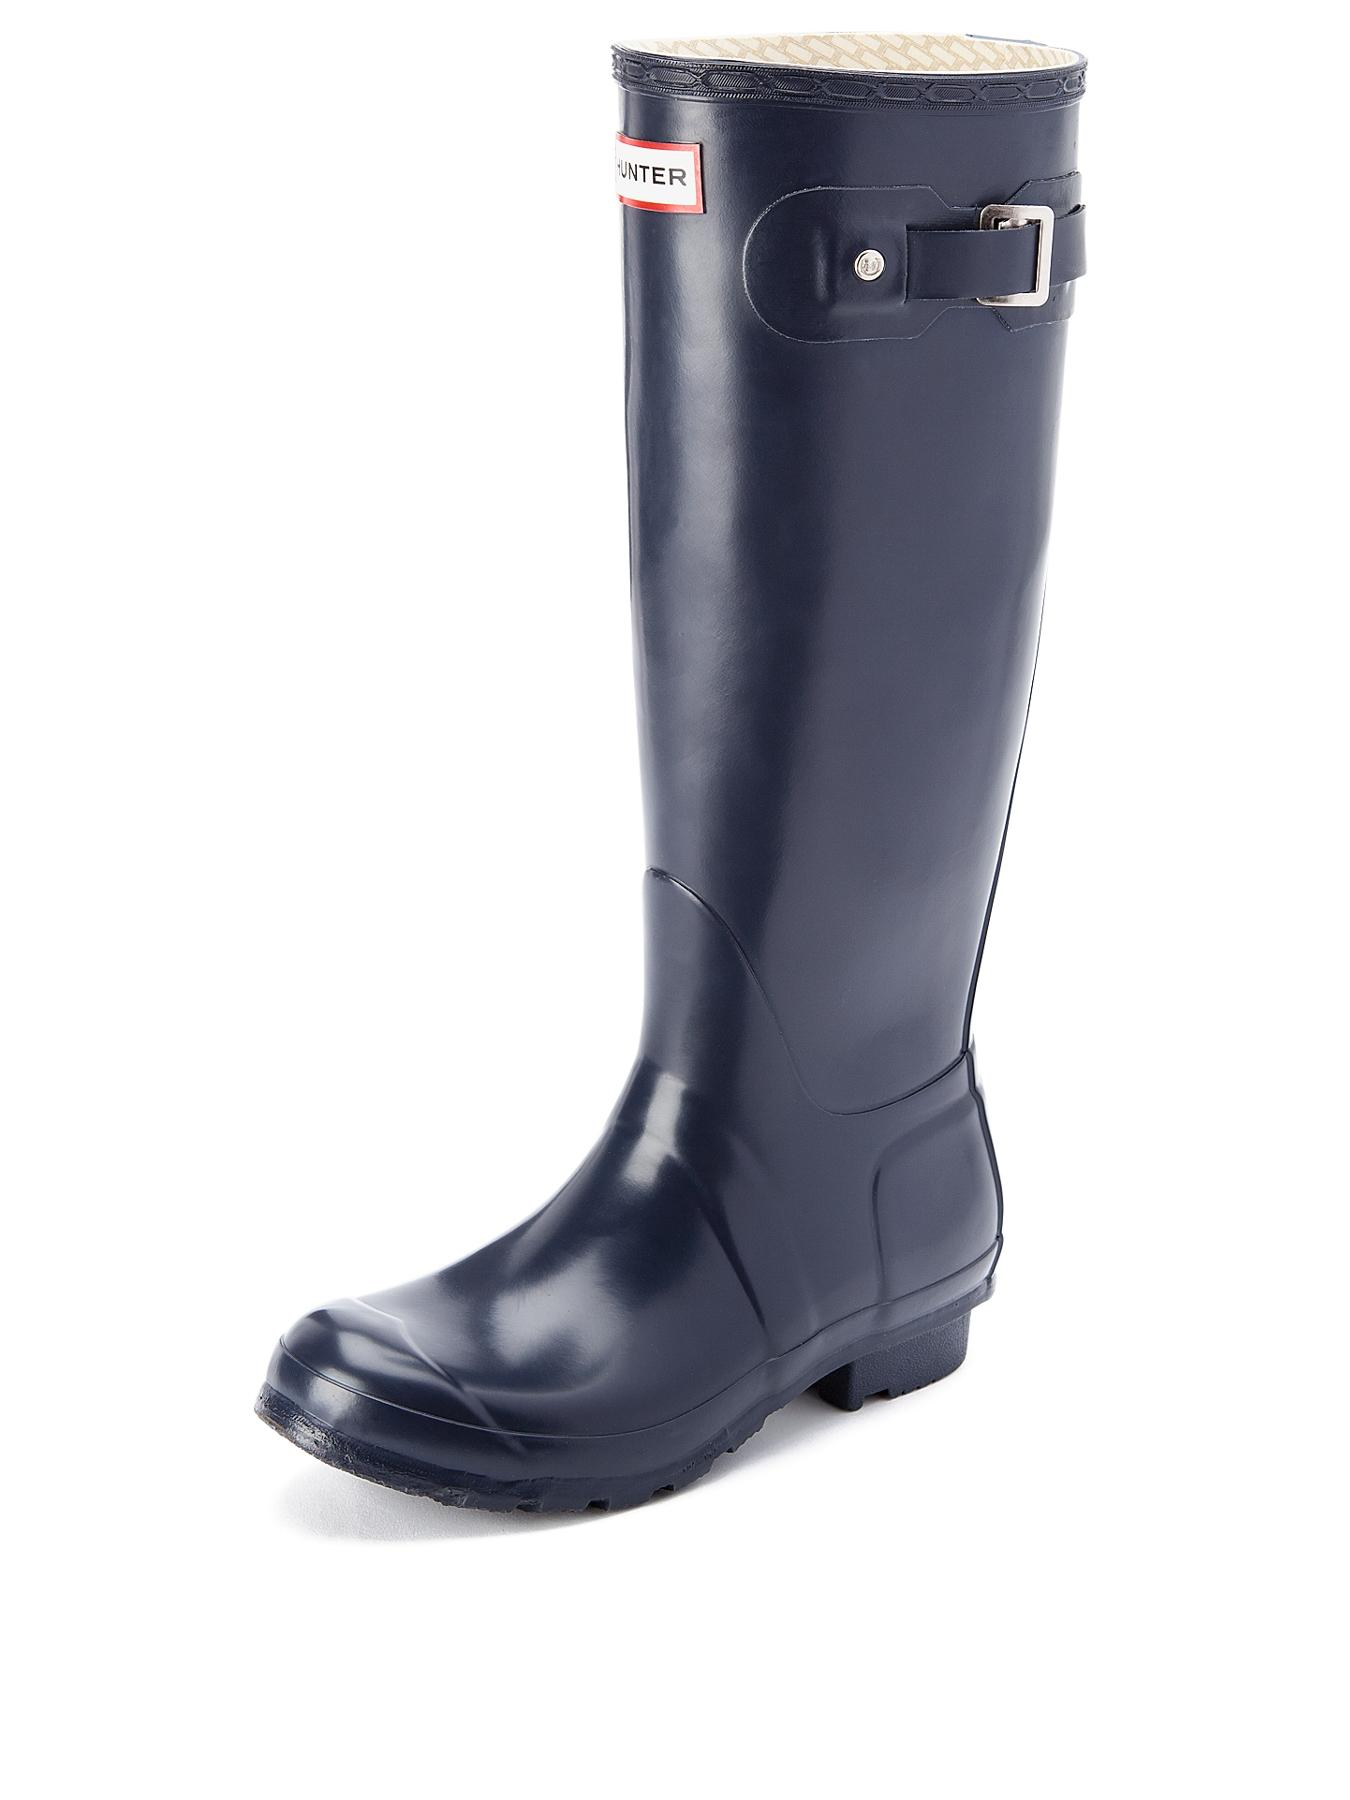 Hunter Original Tall Wellies - Navy - Navy, Navy